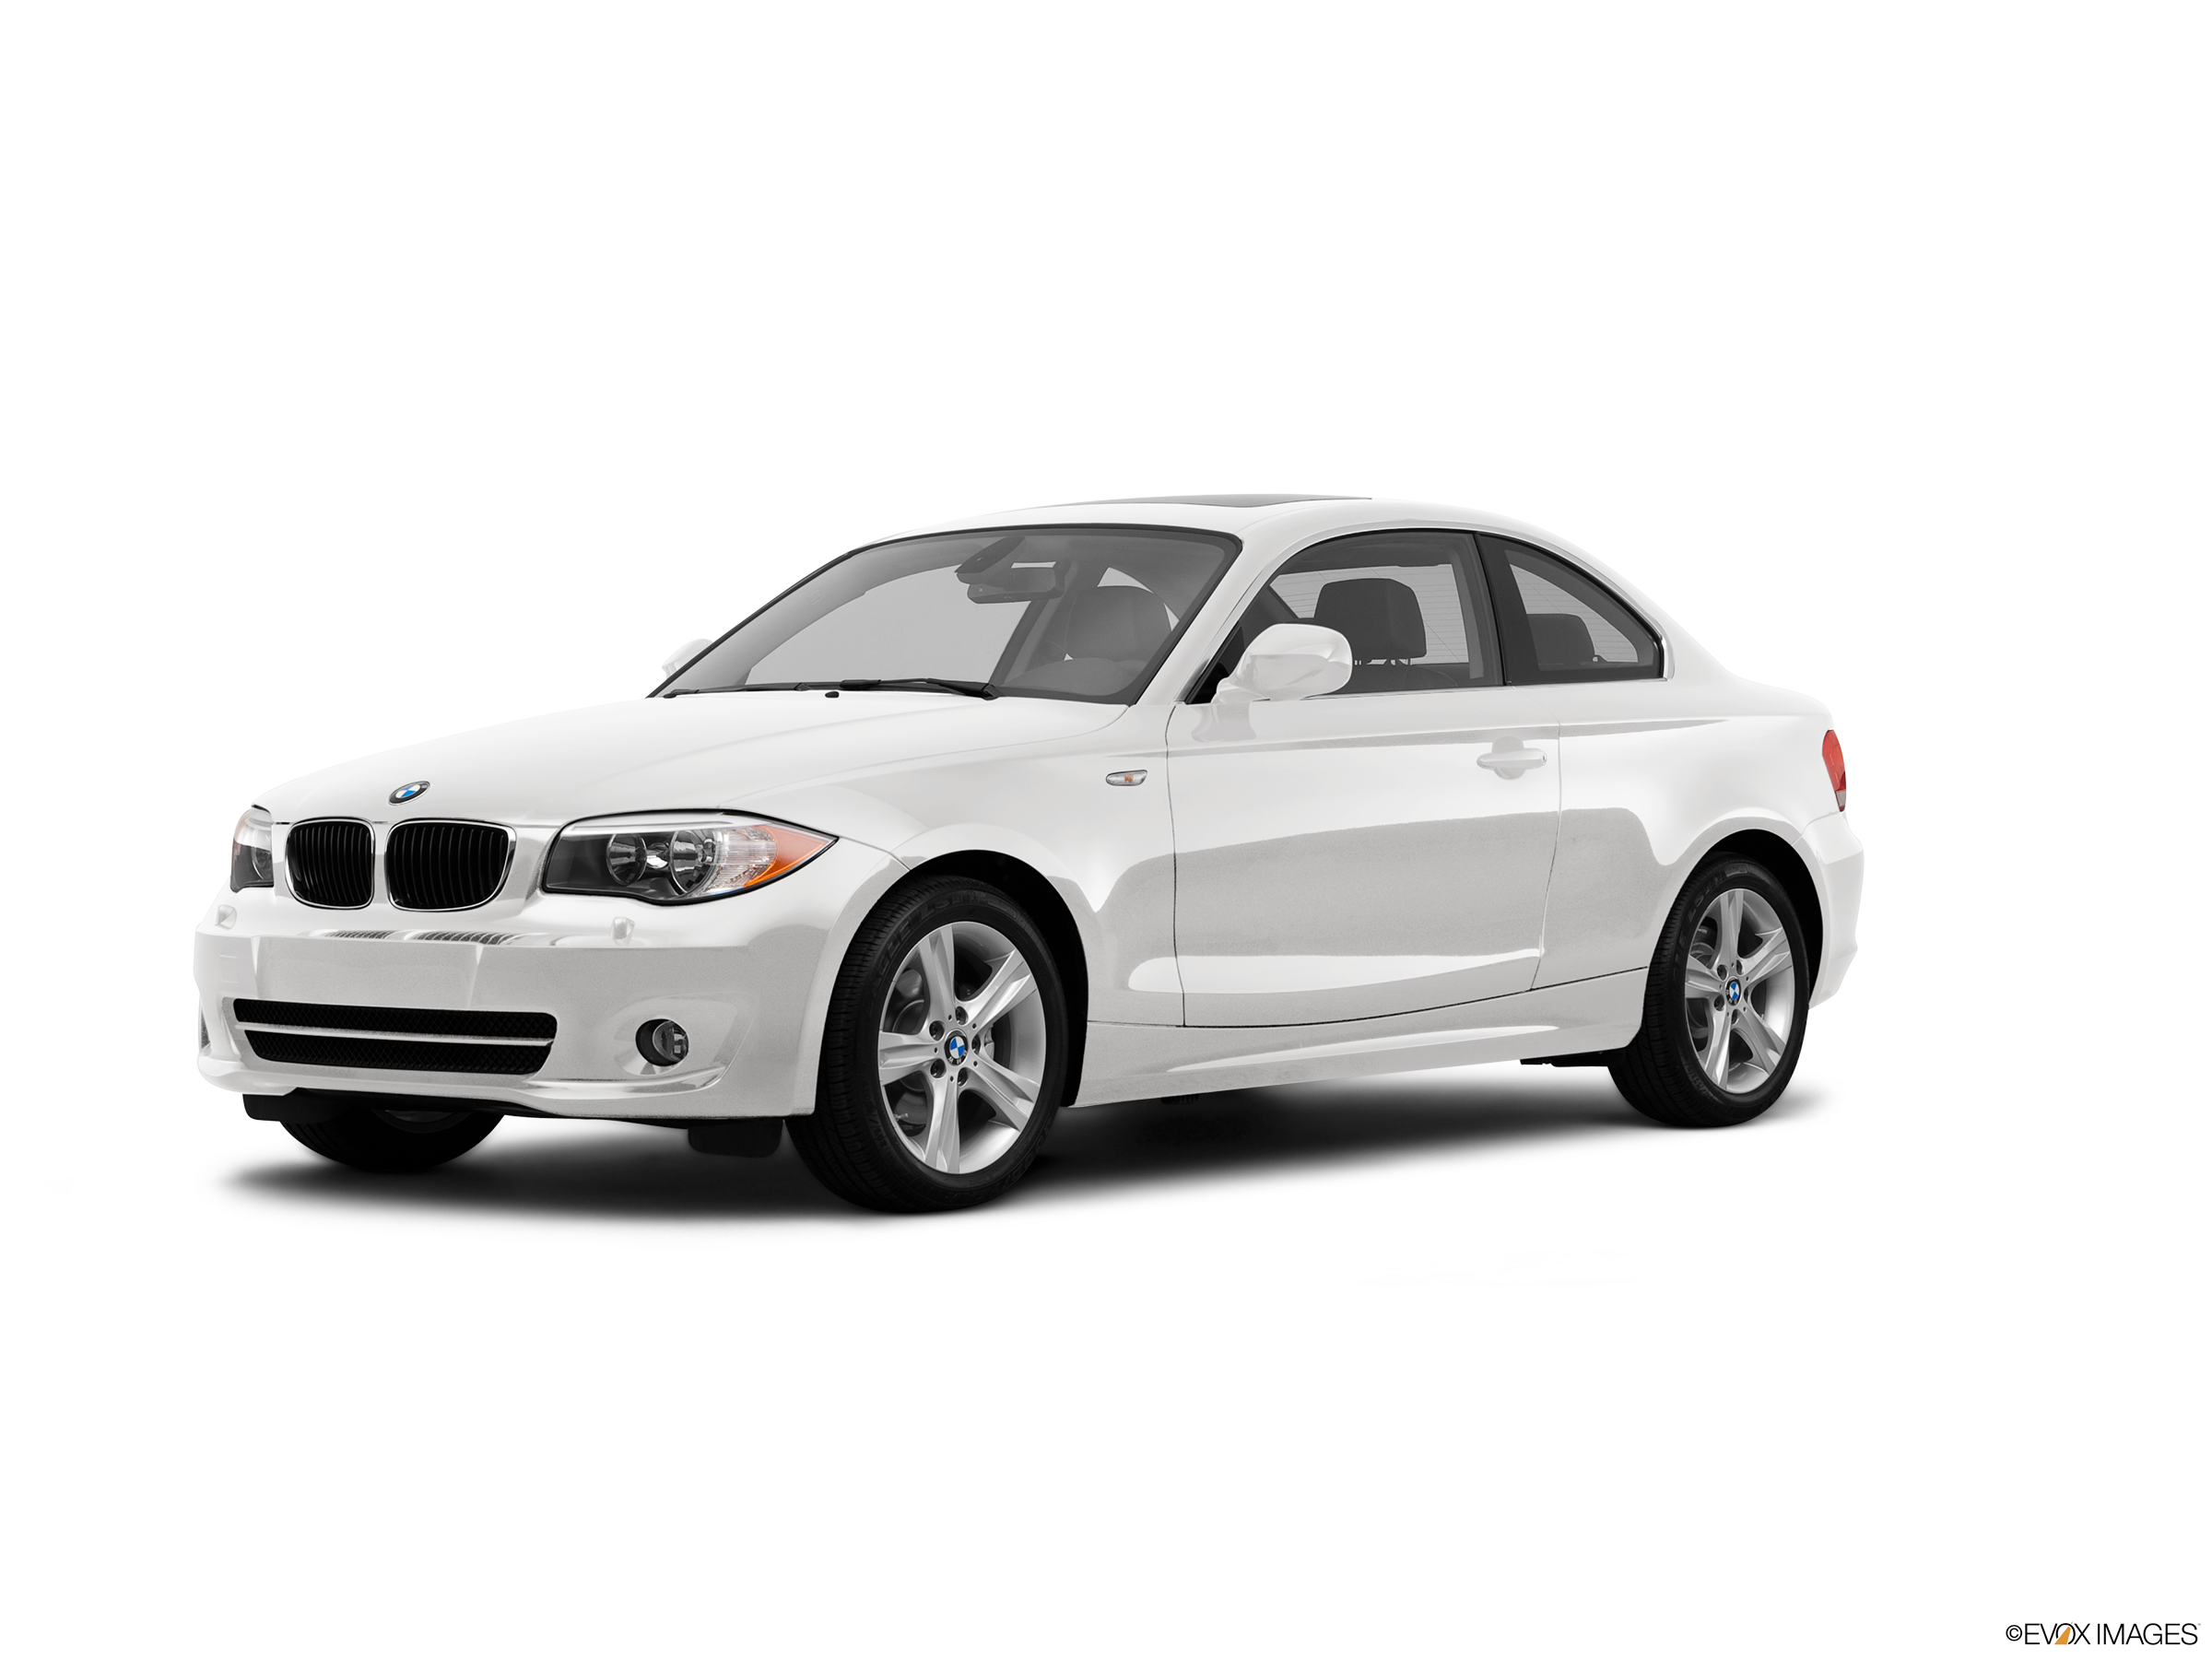 2012 Bmw 1 Series Values Cars For Sale Kelley Blue Book